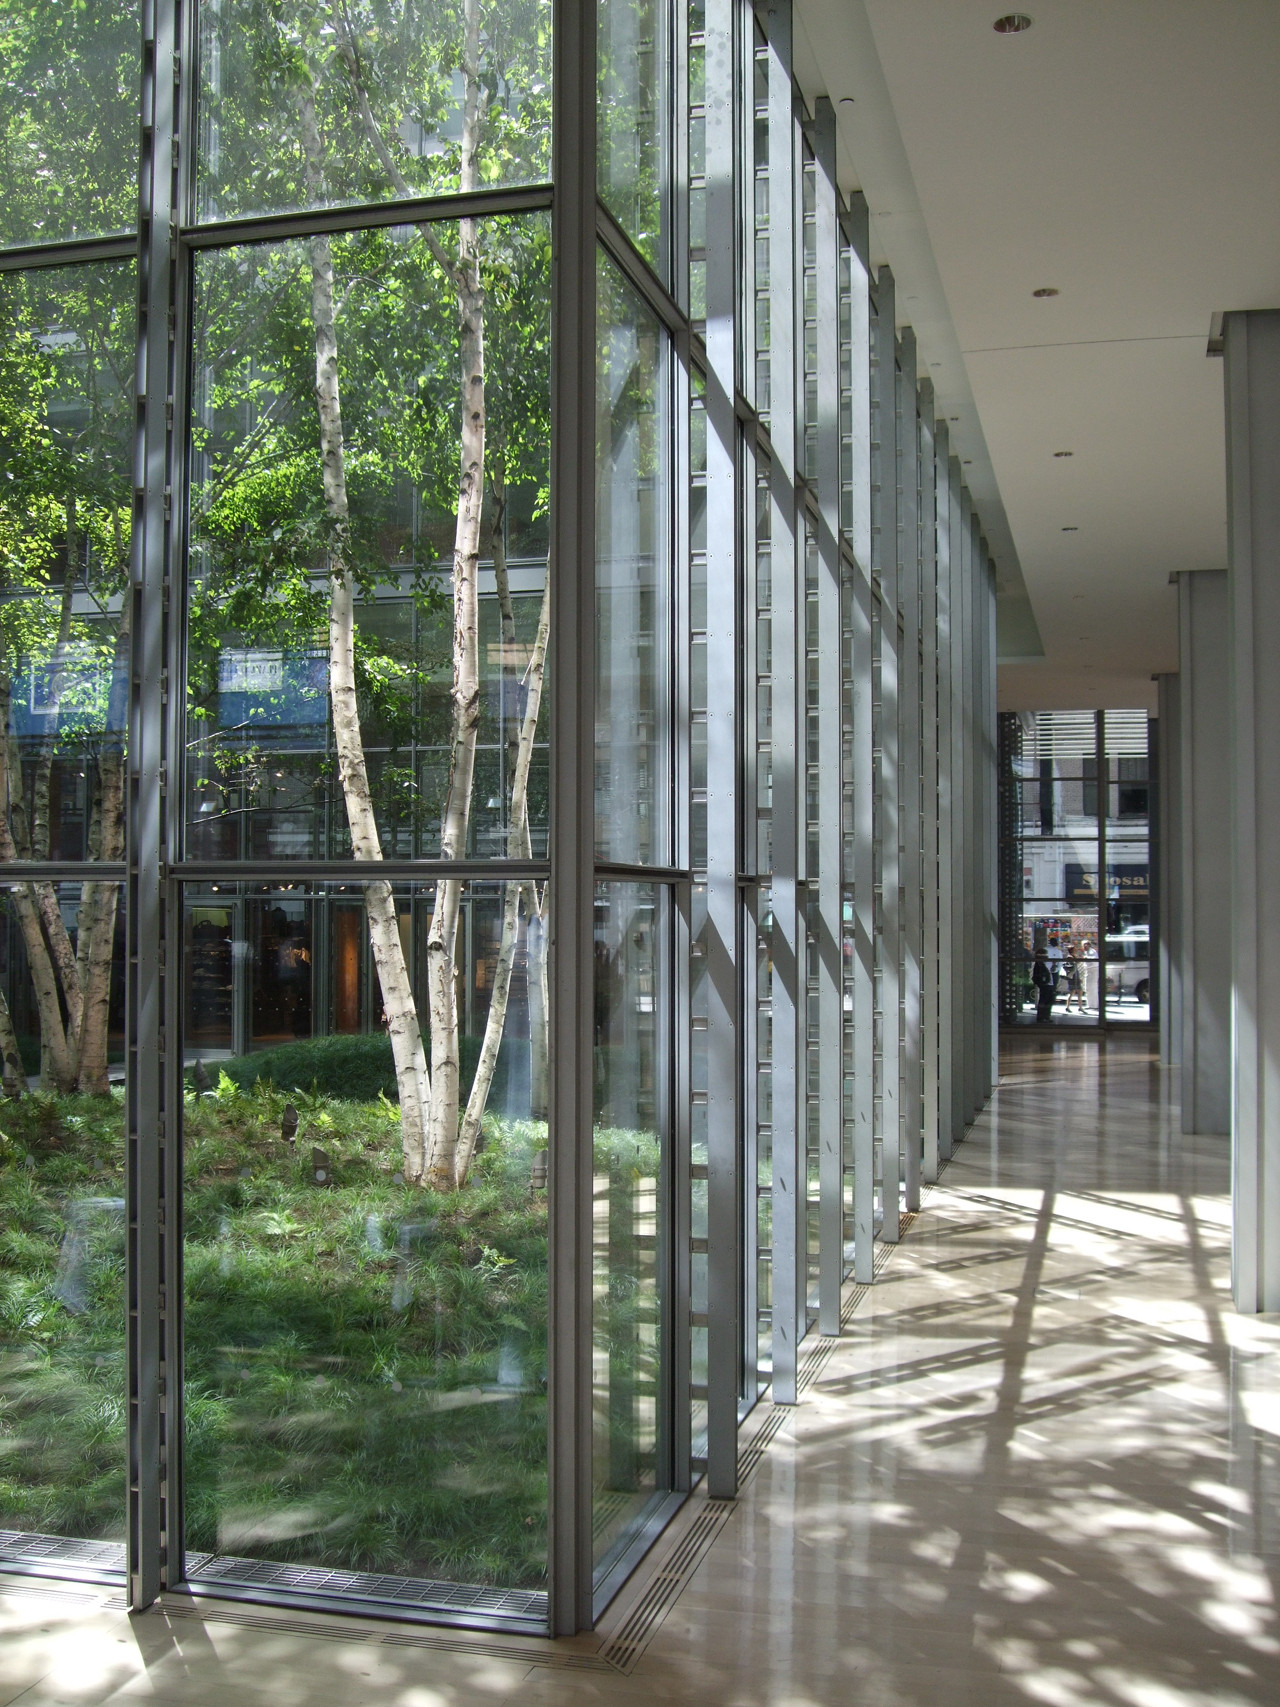 Gallery Of The New York Times Building Lobby Garden    Hm White Site Architects   Cornelia